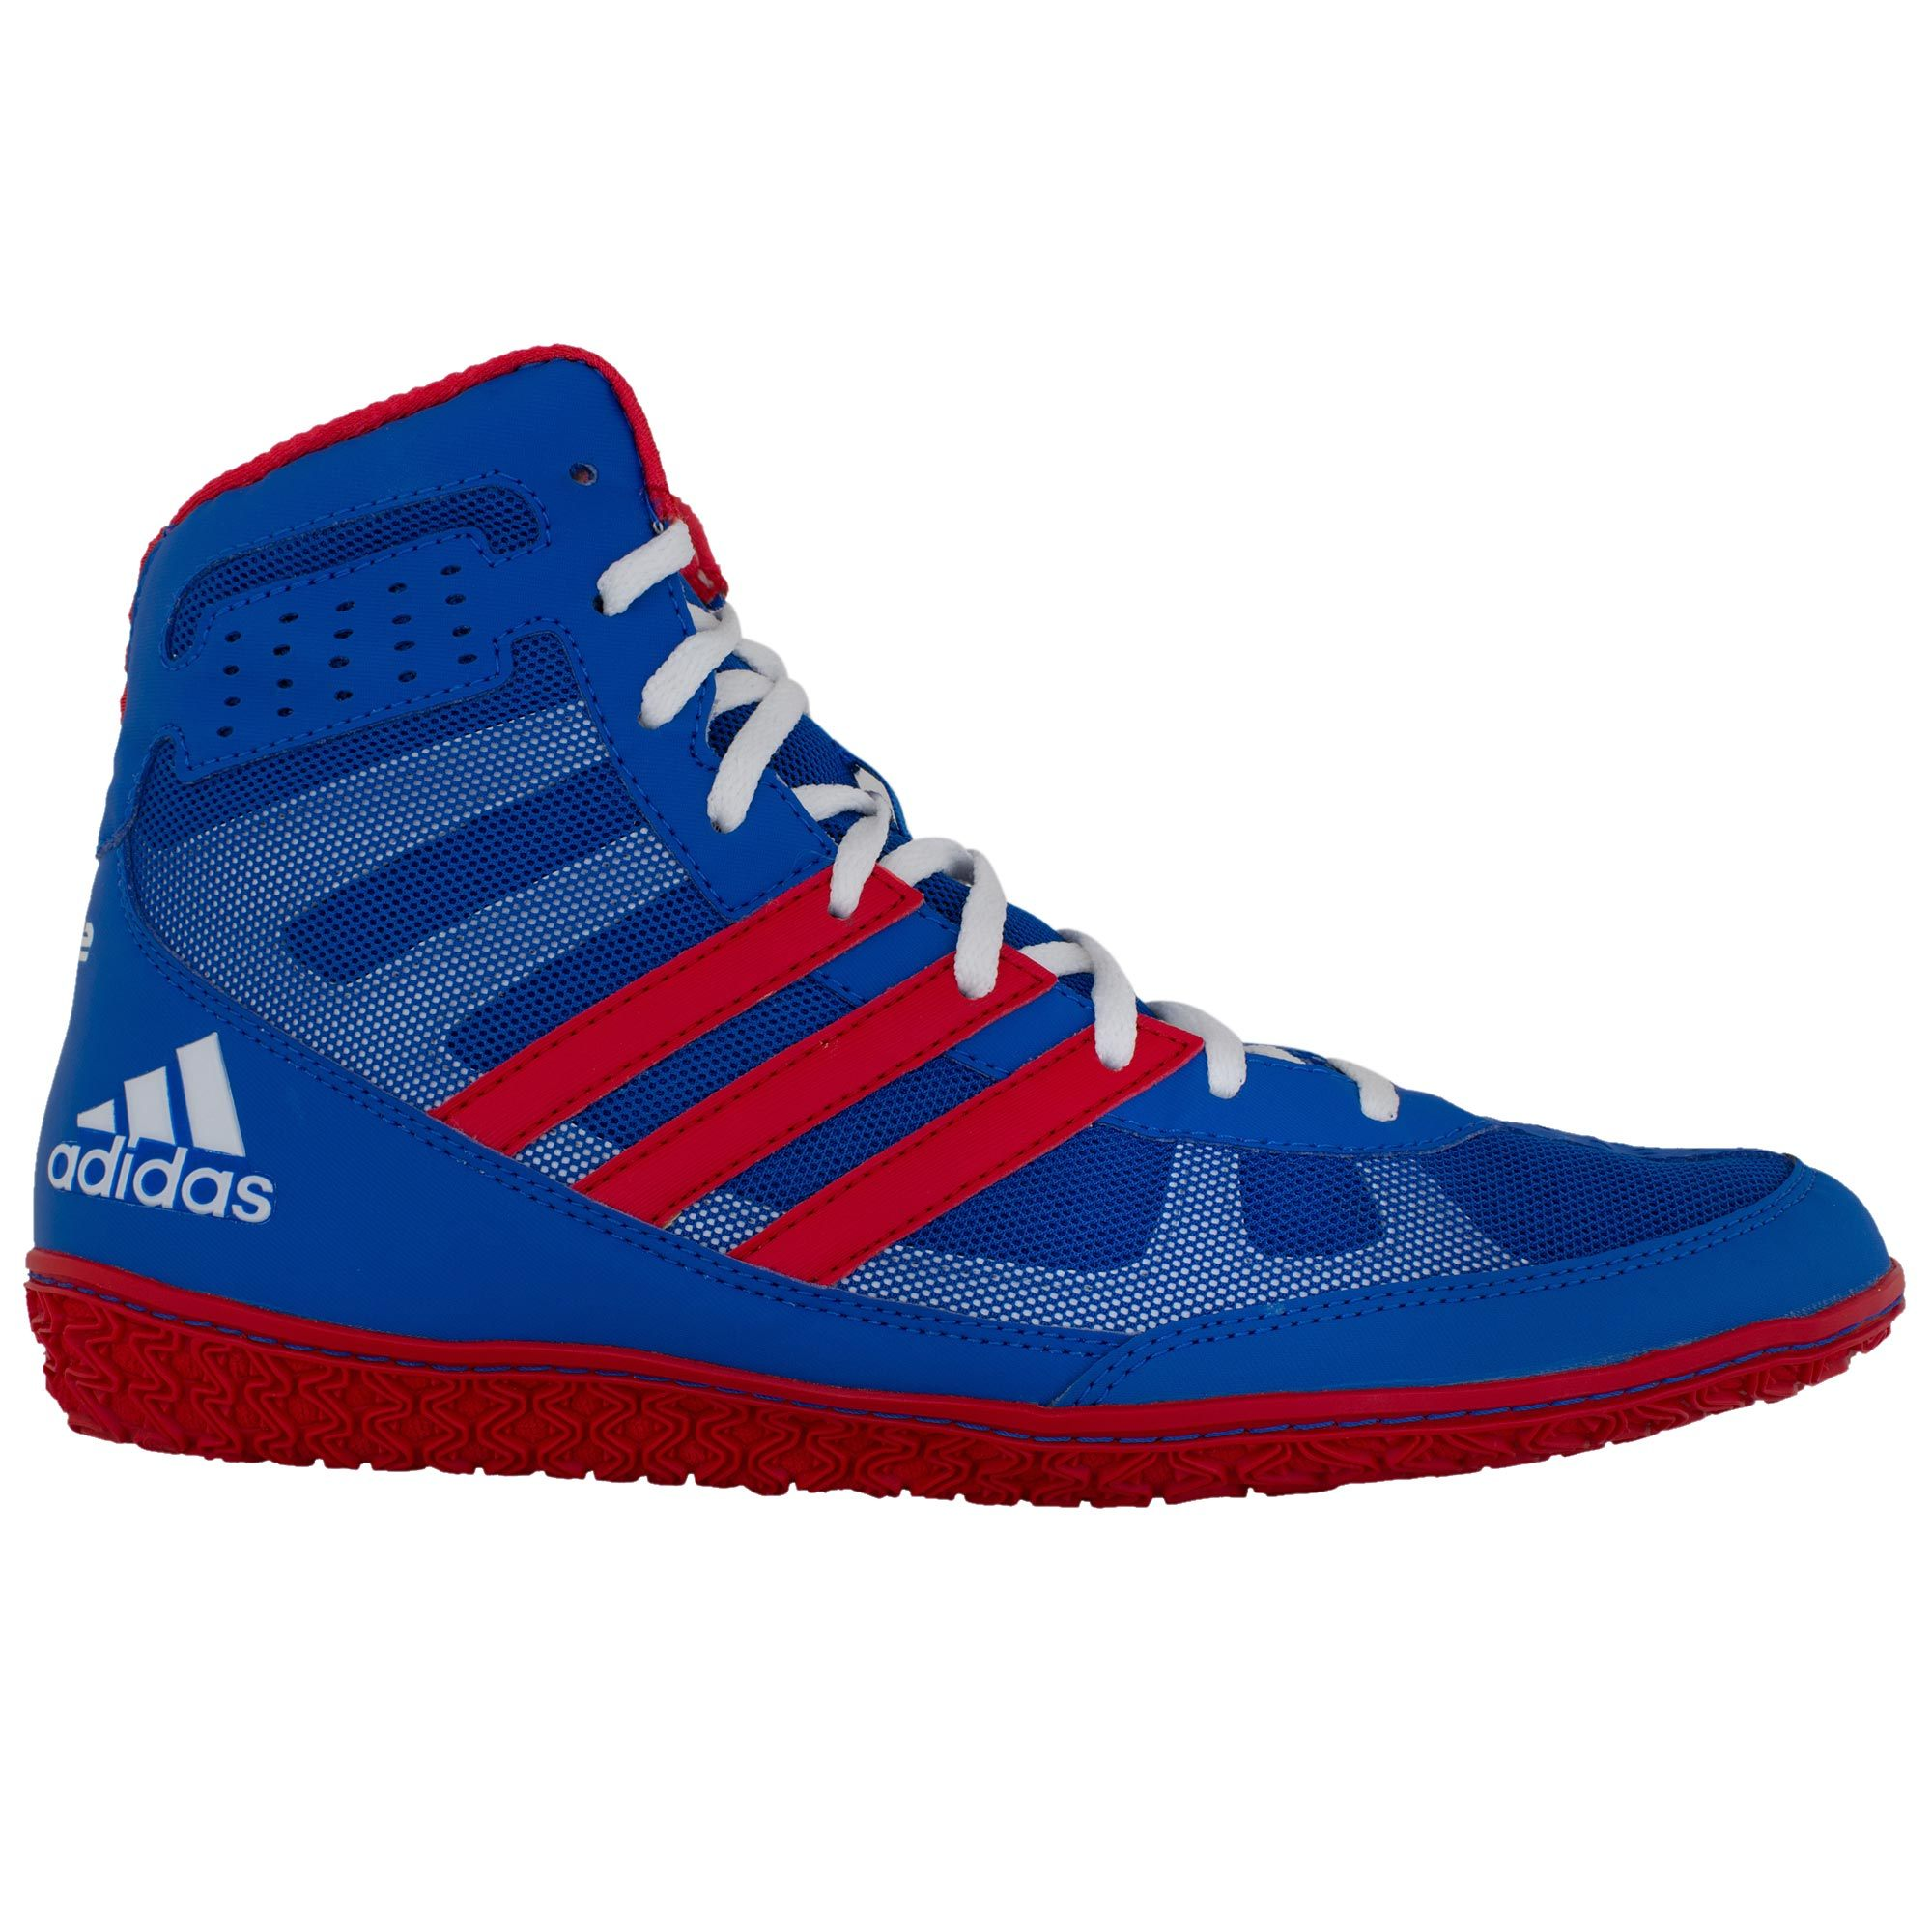 20d5a8853ac Adidas Mat Wizards Royal Blue Red White ...